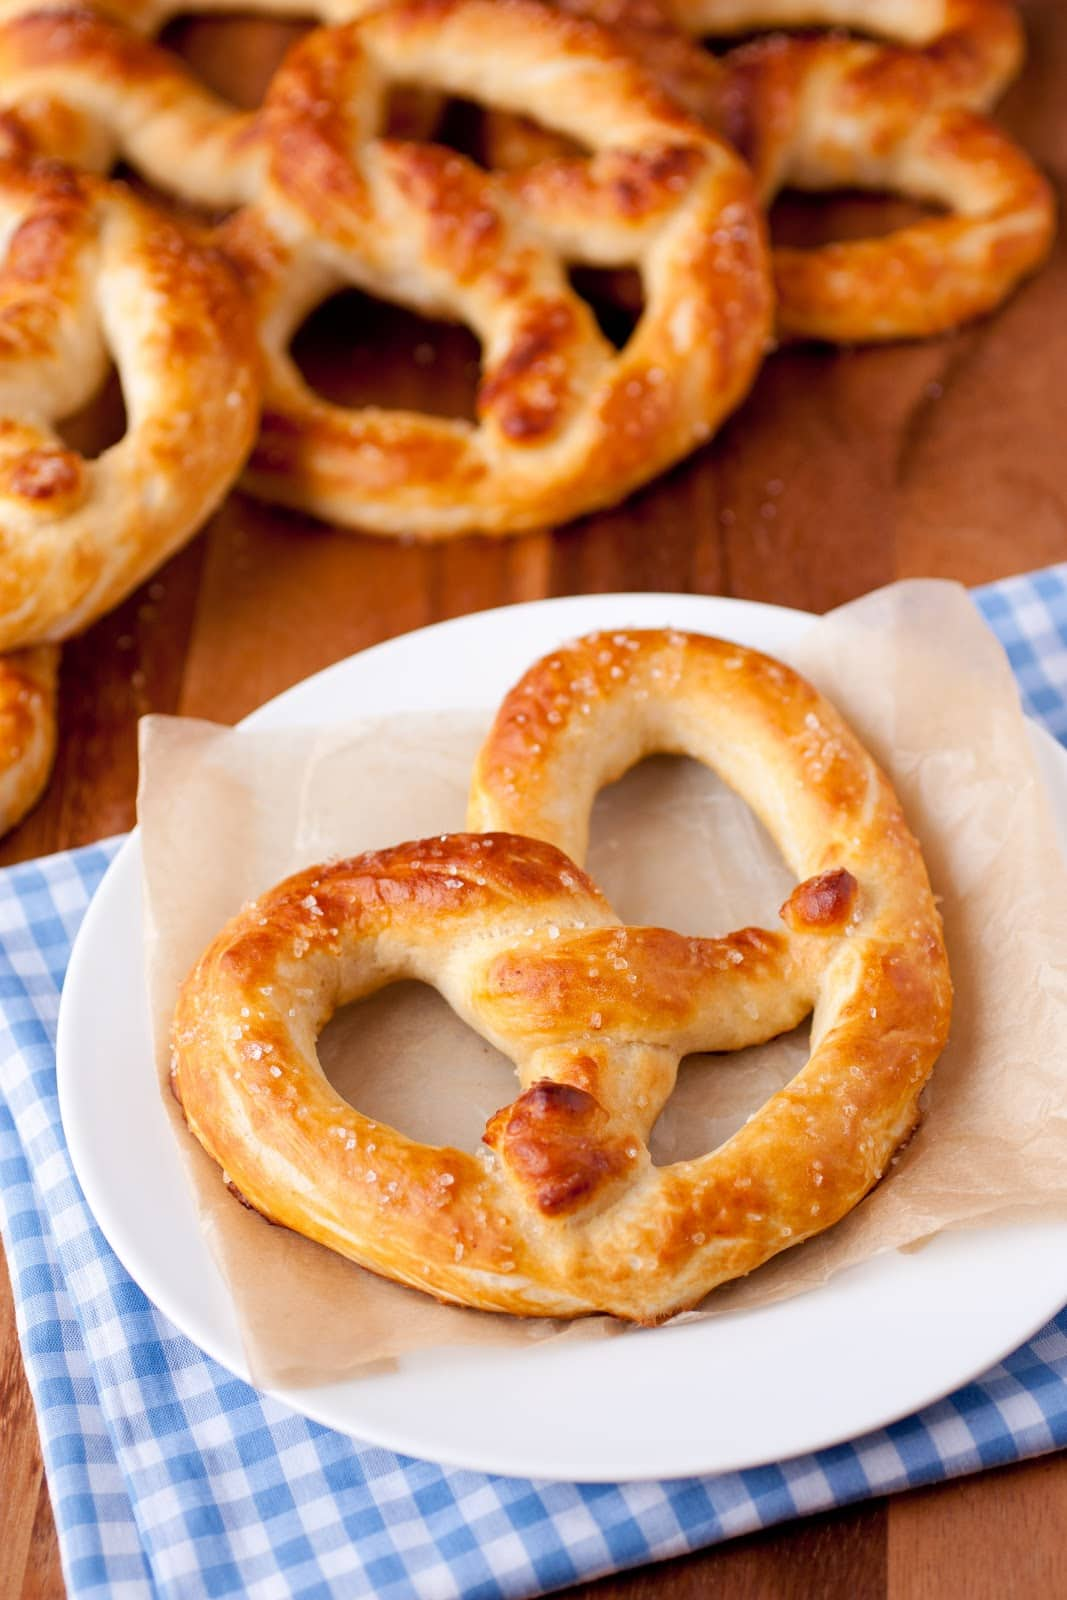 1 golden brown copycat mall pretzel shown here on a sheet of tan parchment on a blue gingham cloth set over a wood surface with 4 pretzels lying in the background